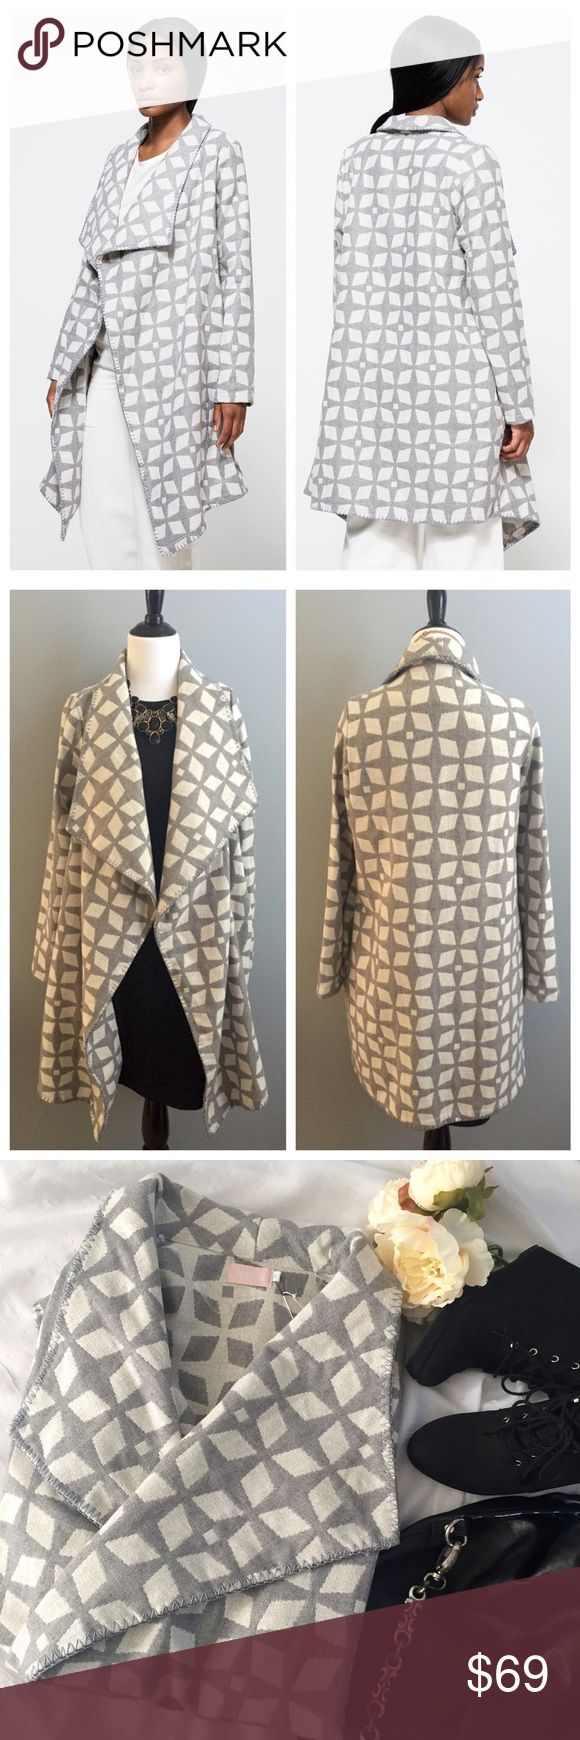 🆕 Farrow cardigan Comfortable yet makes a statement! Has side pockets with asymmetric hem. Open cardigan by Farrow is new with tags and never worn. Measurements: underarm to underarm 23 inches; shoulder to hem 36 inches; arm length 25 inches. Farrow Sweaters Cardigans